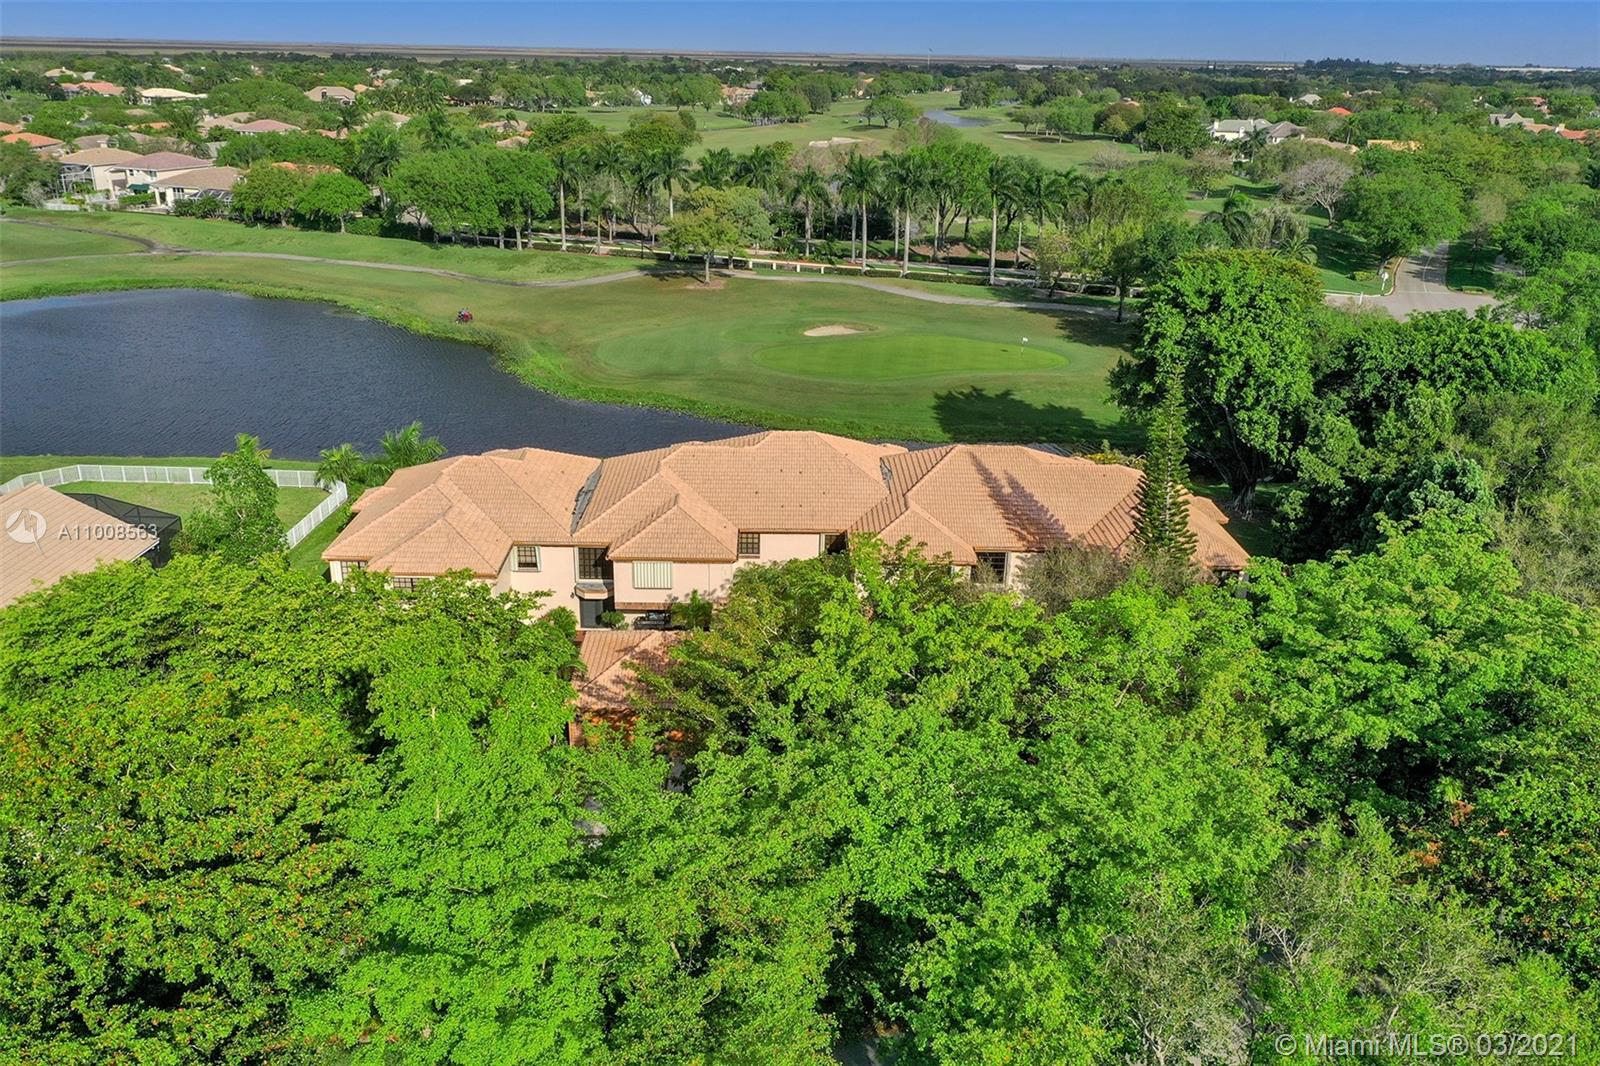 WOW! GREAT BUY ON THIS RARELY AVAILABLE VILLA COACH HOME WITH A ONE CAR GARAGE AND INCREDIBLE WATER AND GOLF VIEWS IN WONDERFUL EAGLE TRACE COMMUNITY! UPDATED KITCHEN & BATHS! BRAND NEW A/C! ACCORDION SHUTTERS! NEAT, CLEAN, AND READY TO GO!